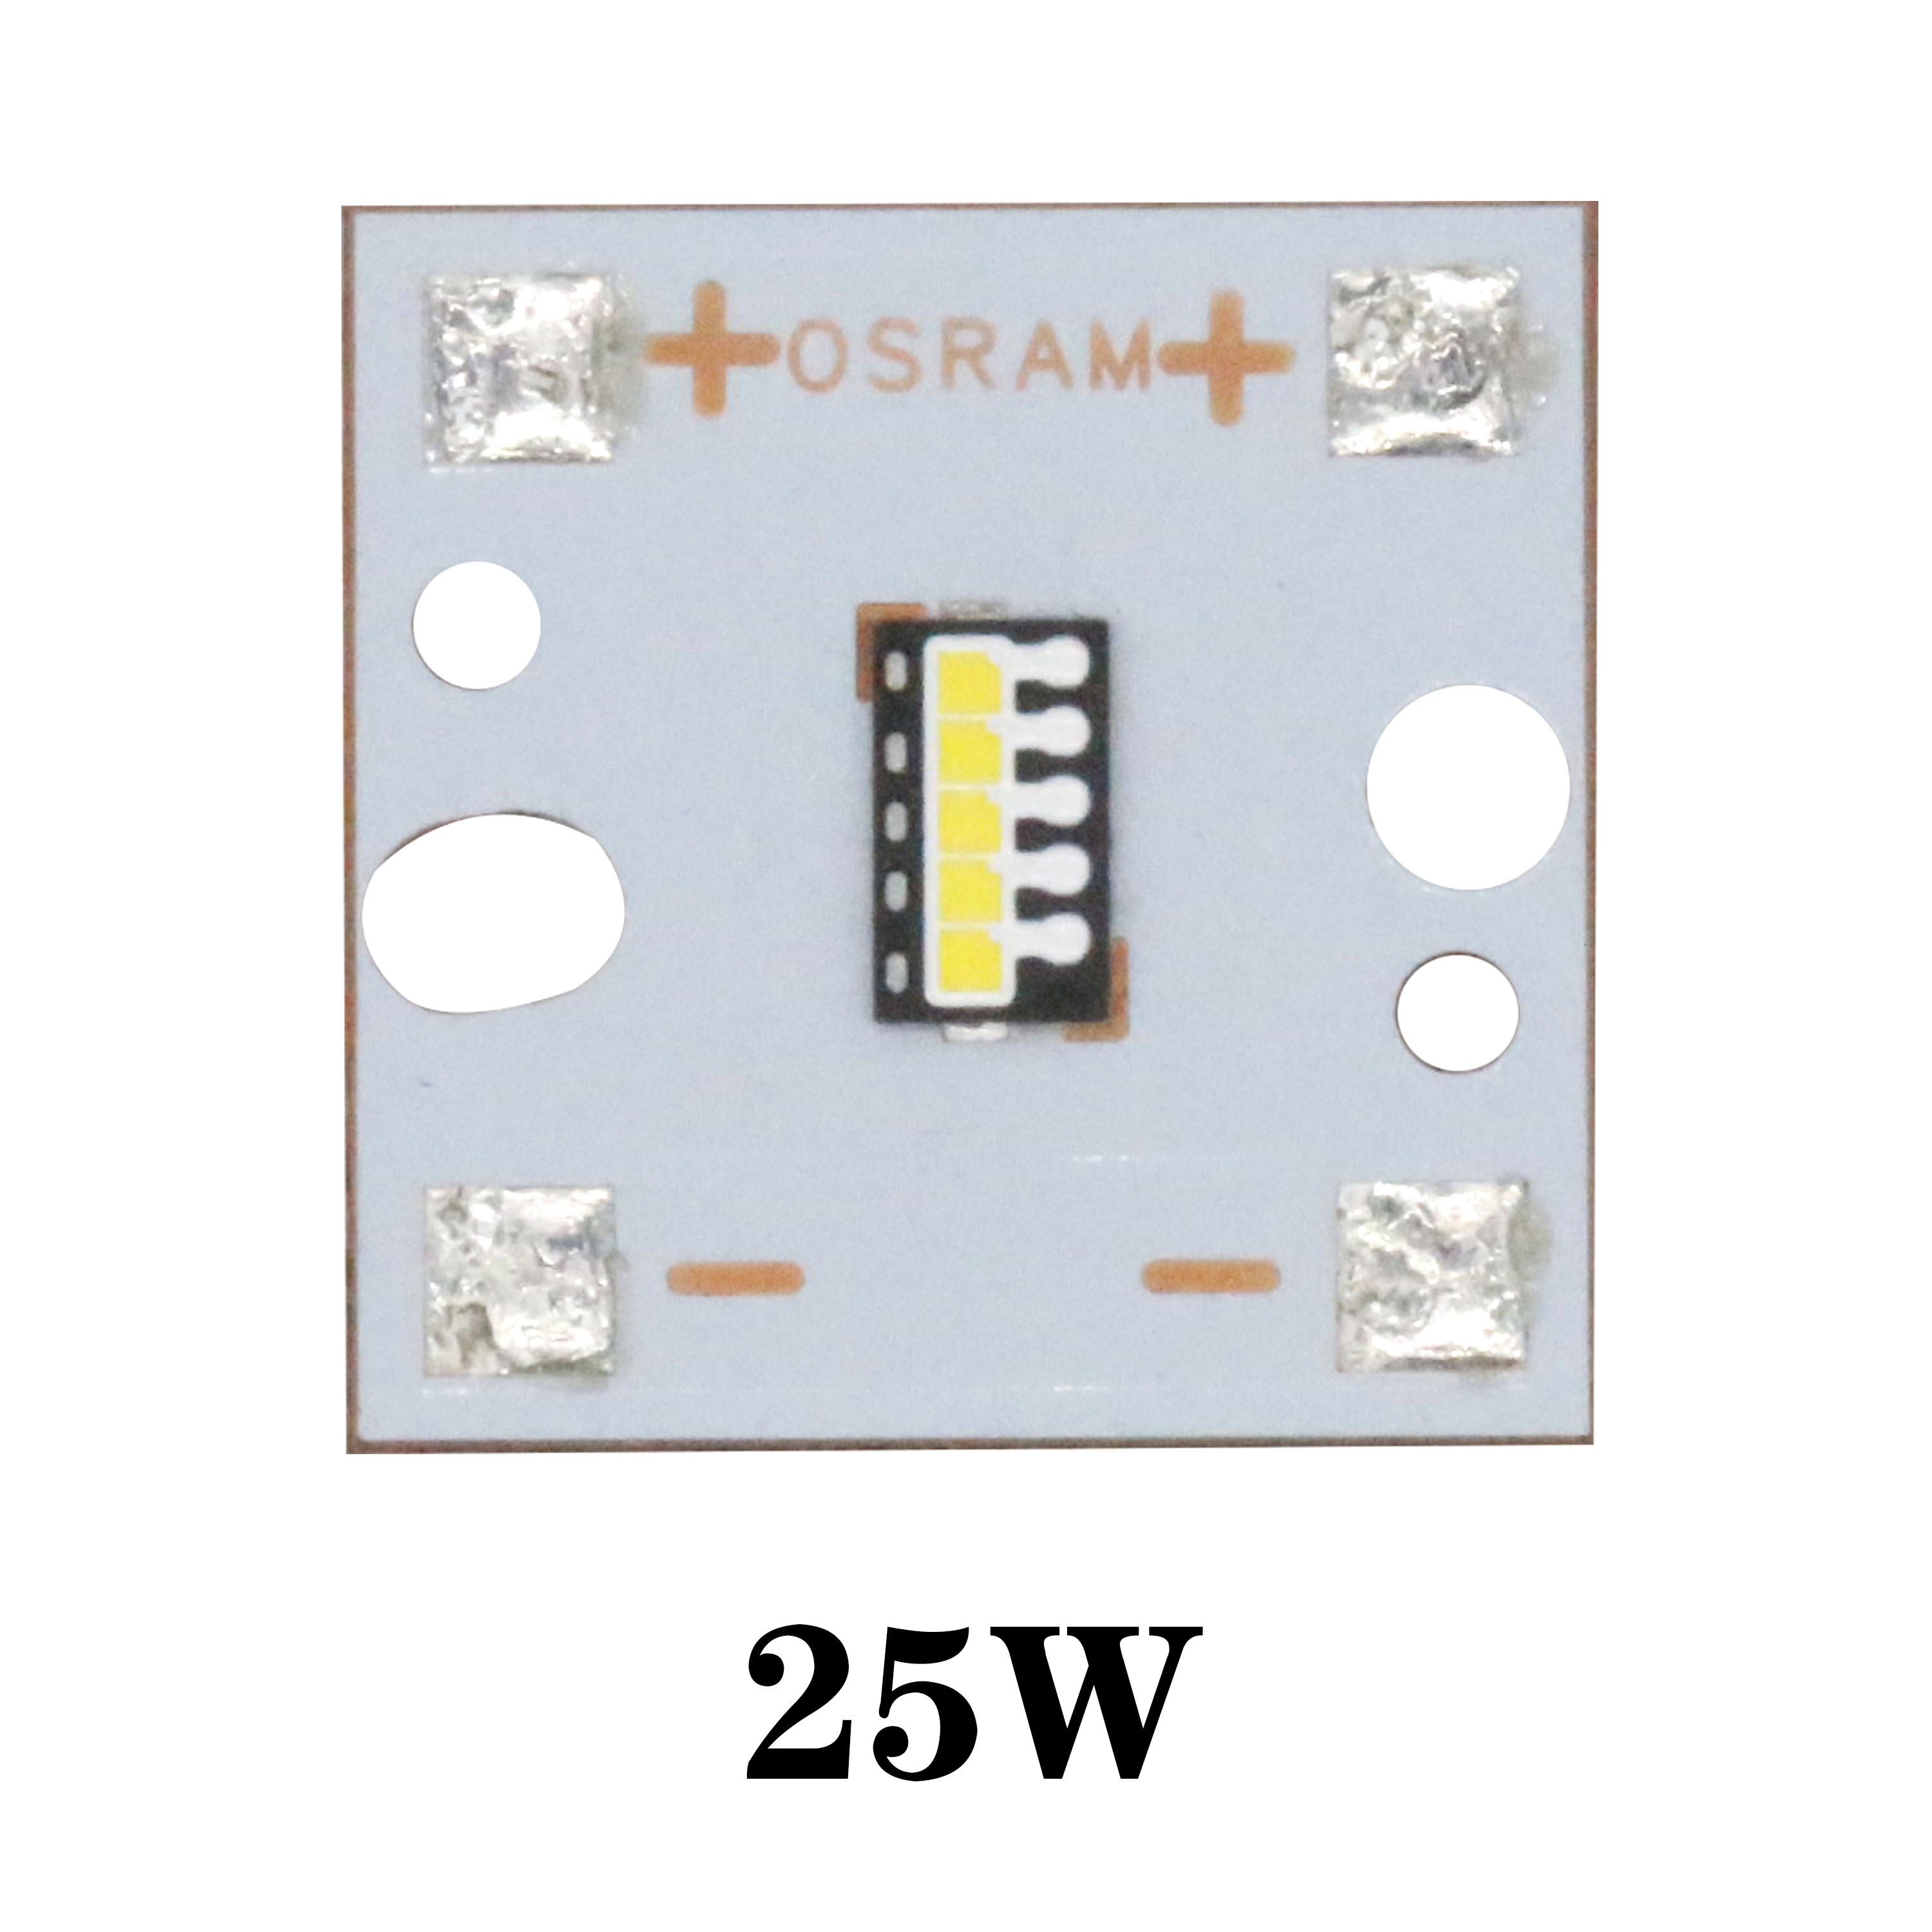 Super Bright 25W 20W 15W LED Light  6500K LED Beads PCB Tube Osram Lamp Substrate Copper For Automotive Headlights DIY